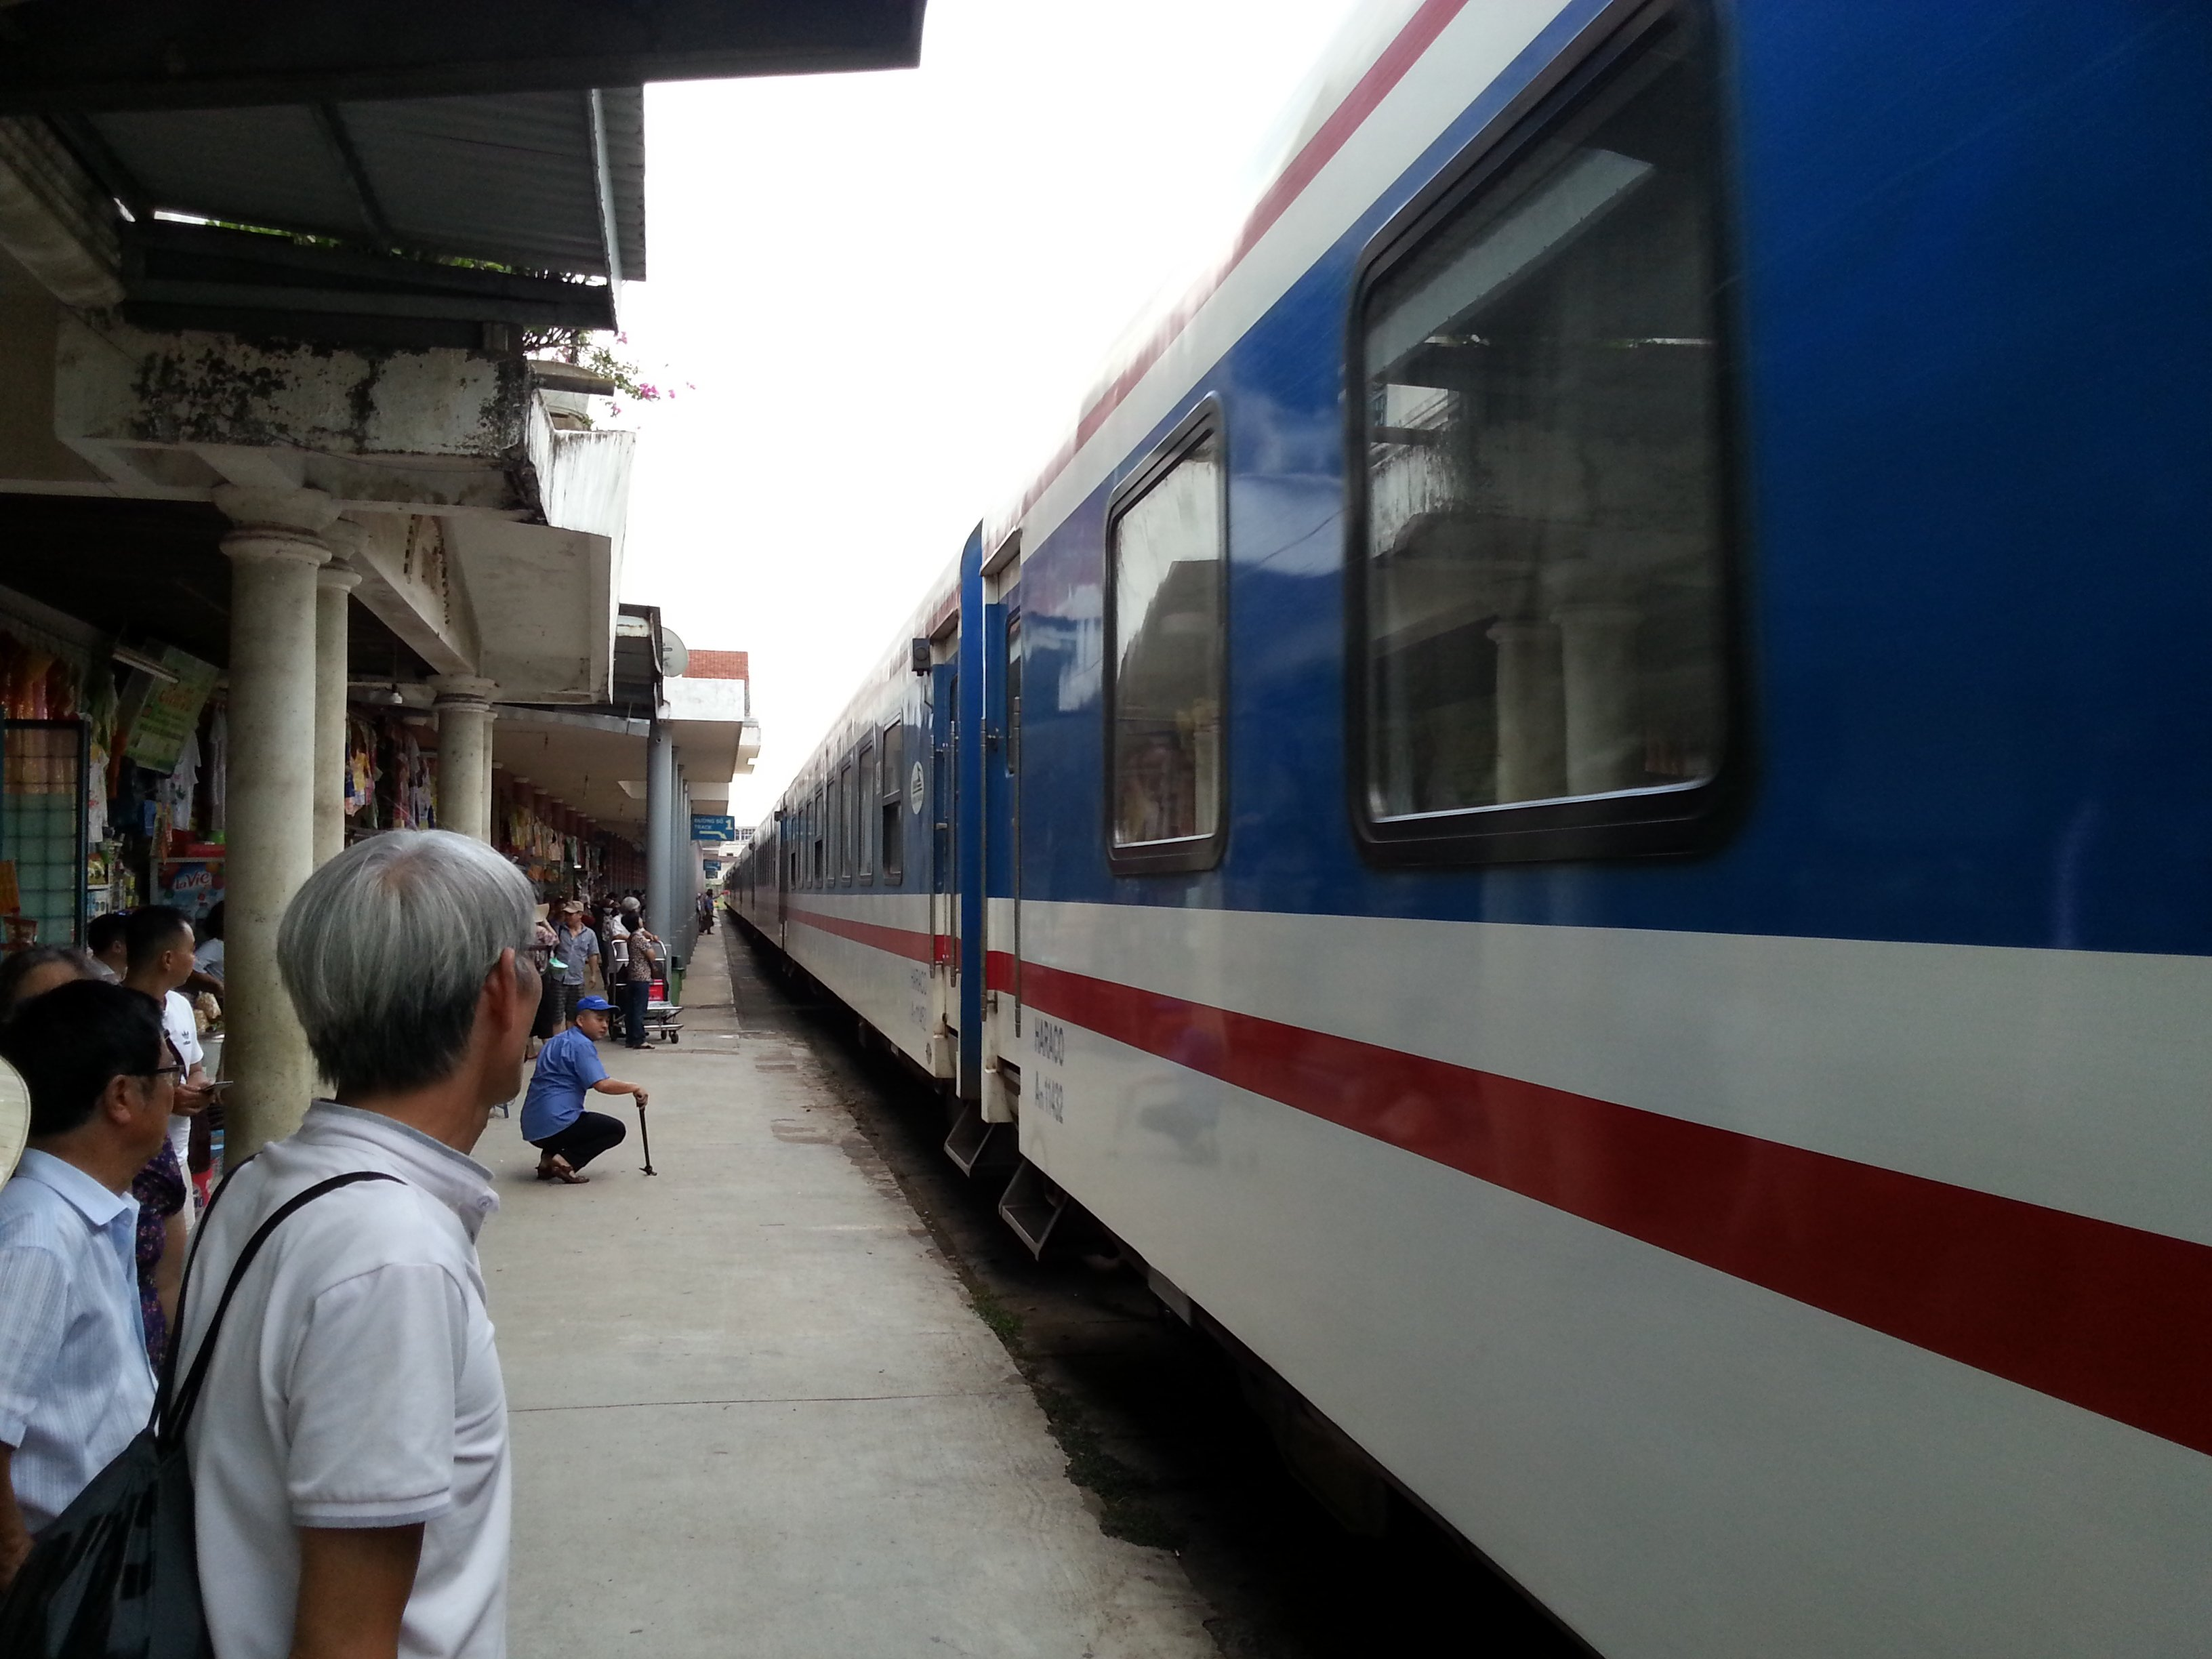 Train #SE2 at Hue Railway Station